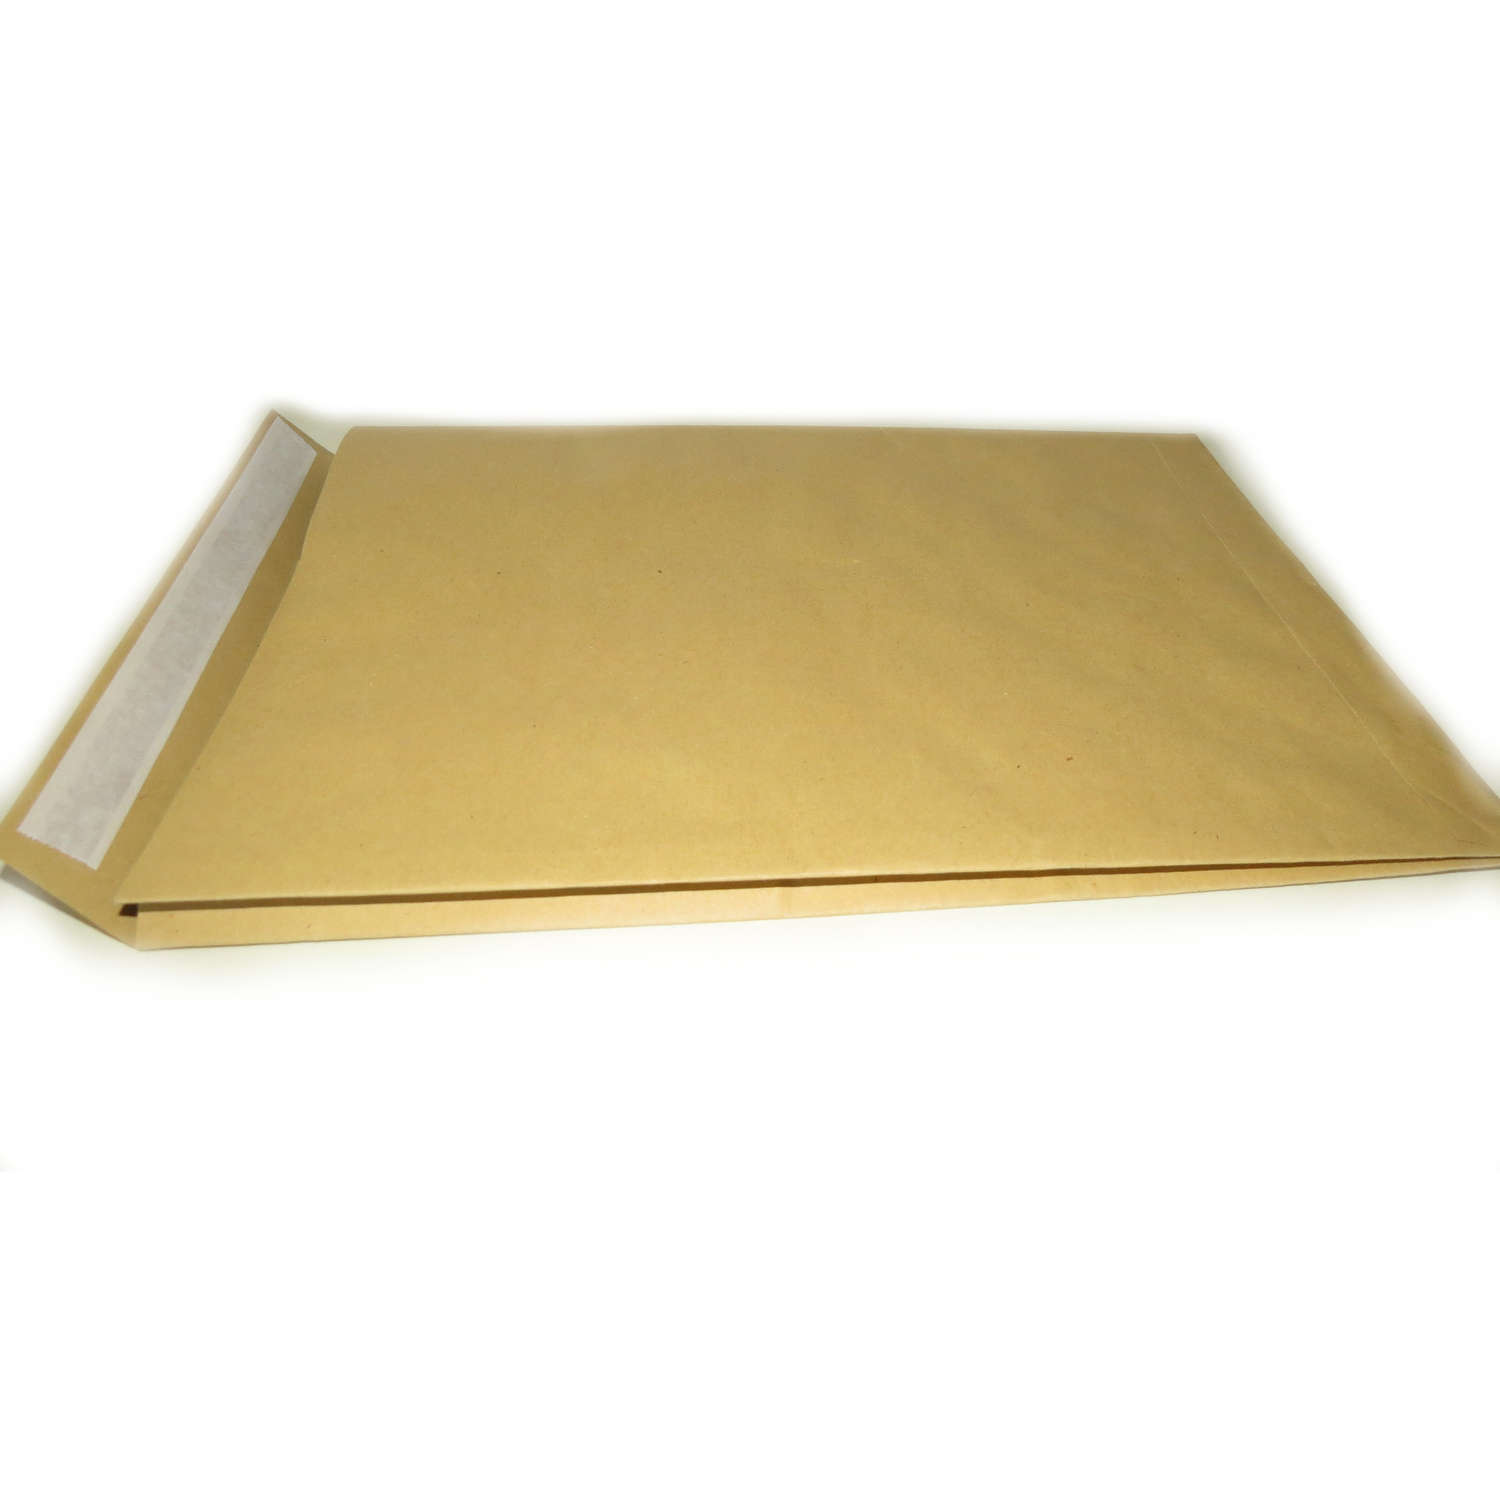 A3 Brown Expandable Envelope 300x400mm - single